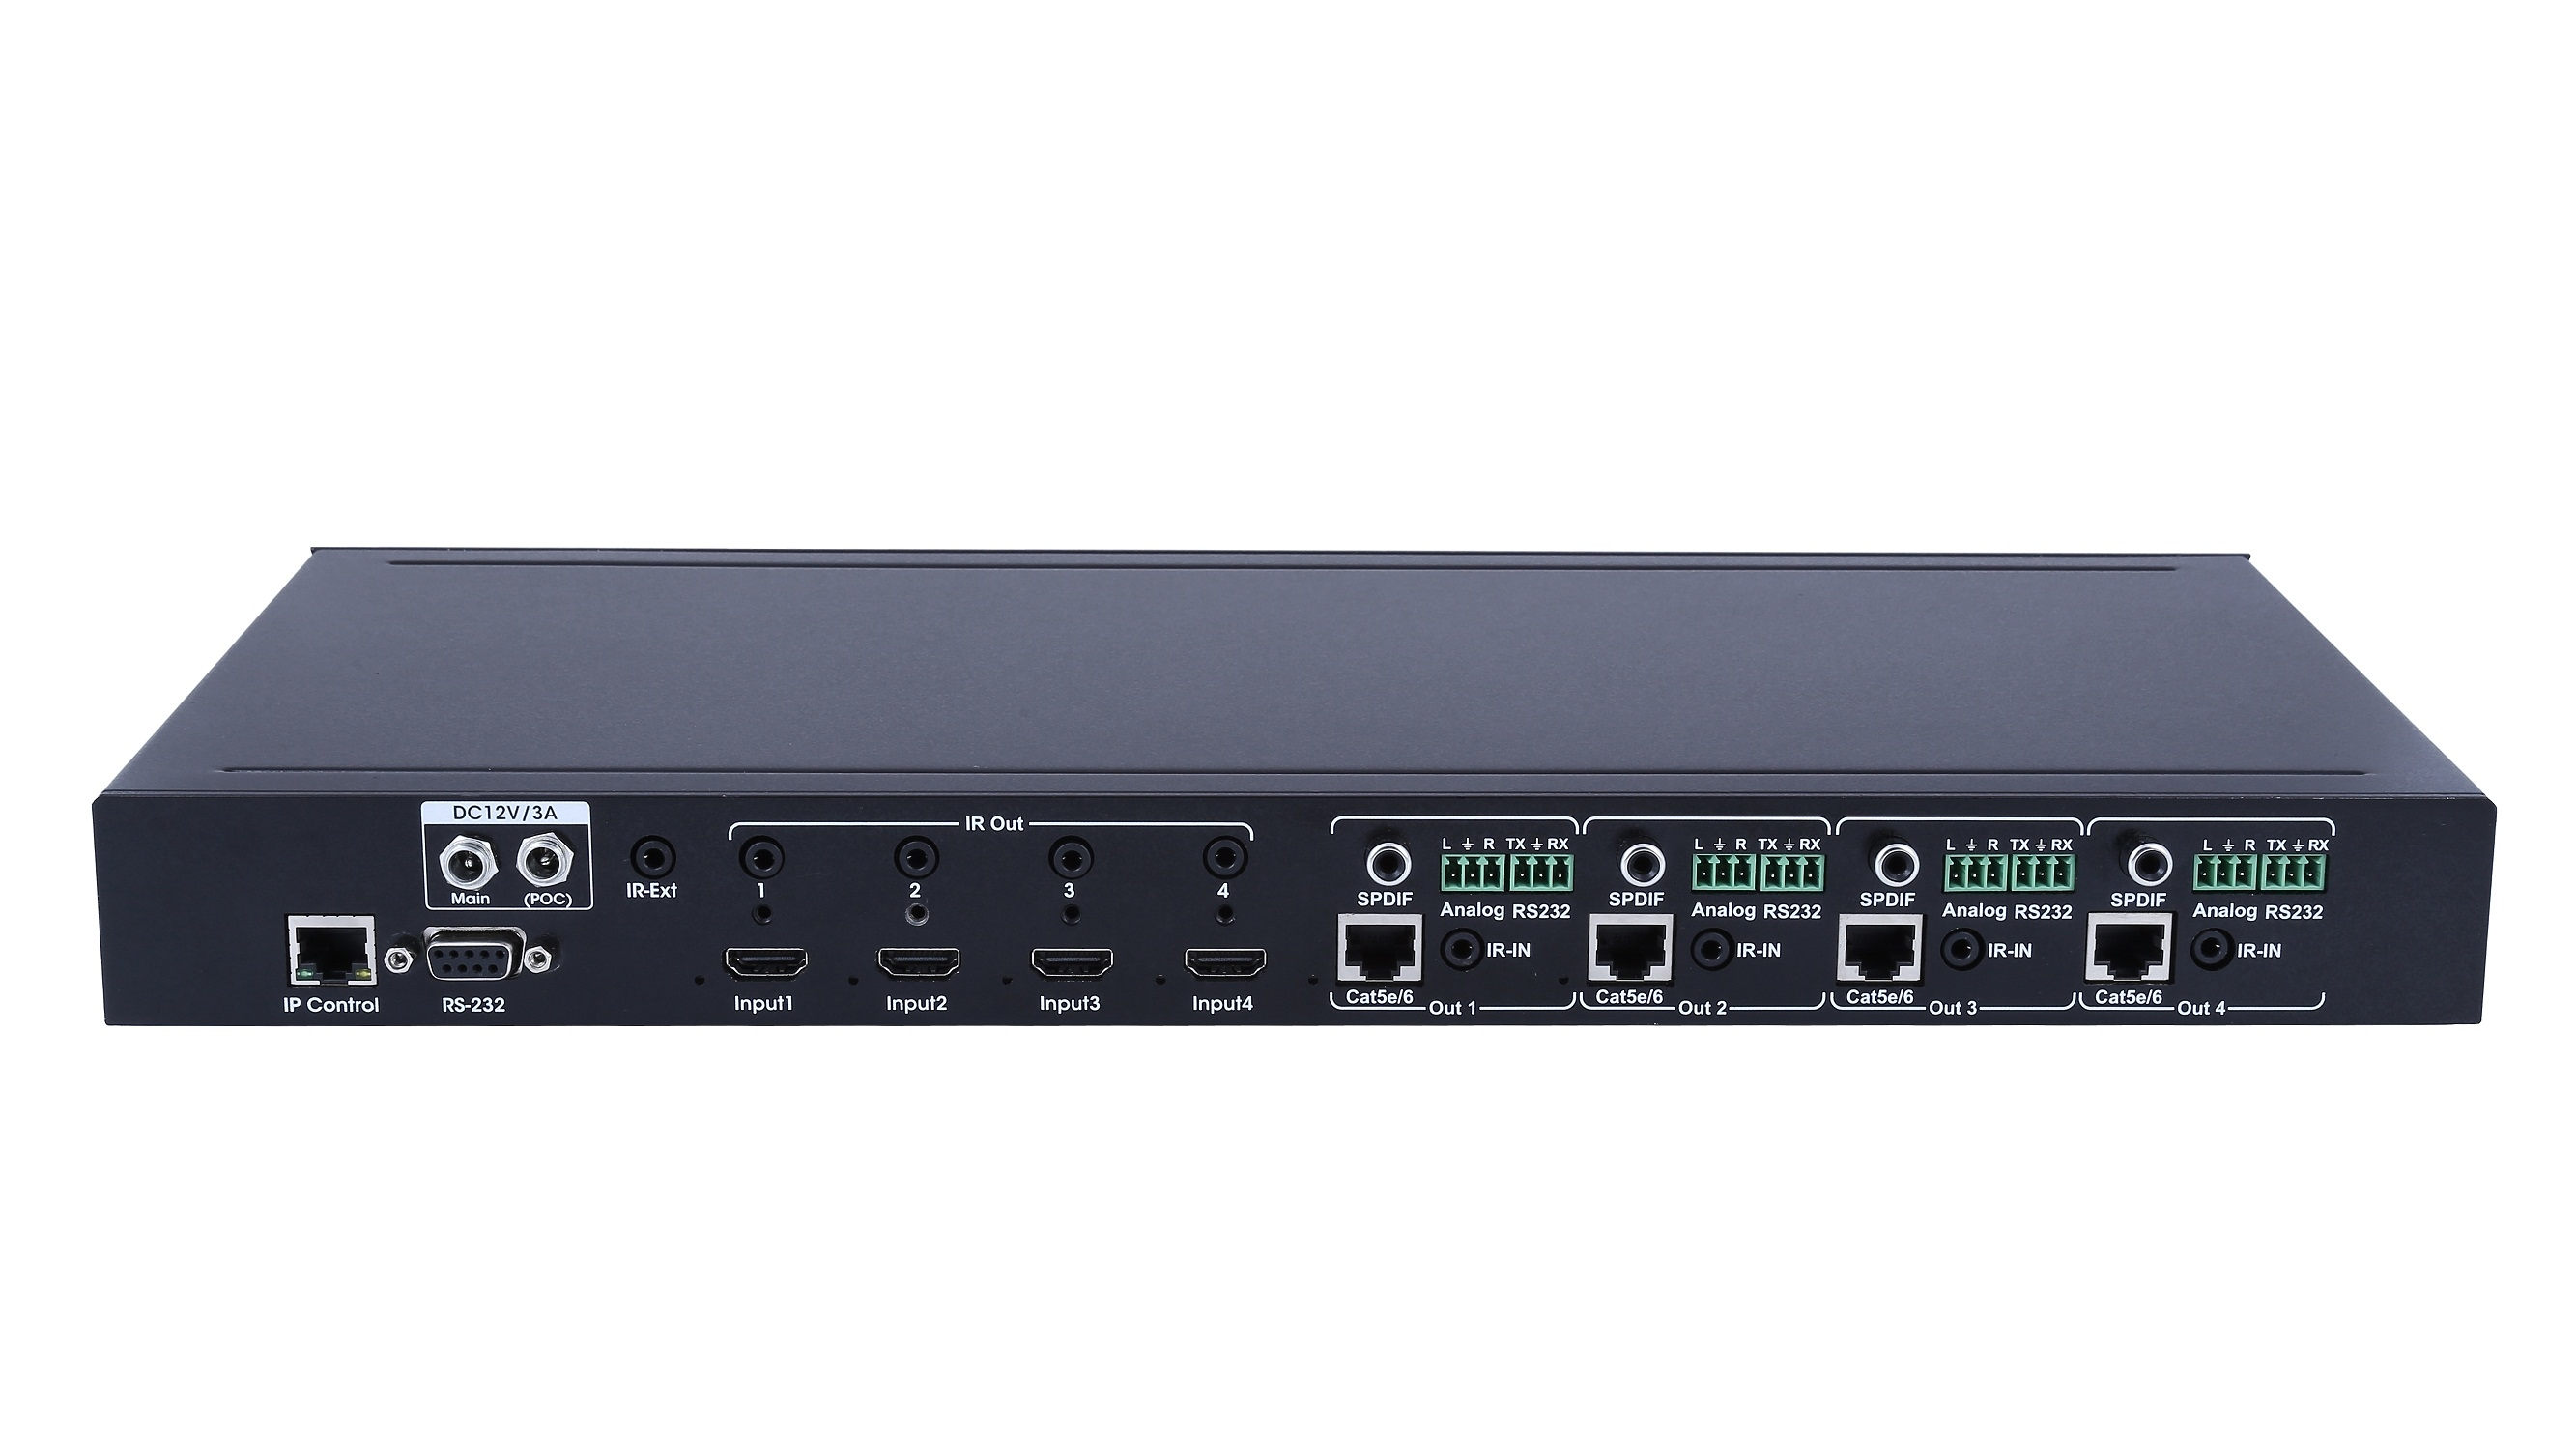 4k@60HZ, HDCP2.2 4x4 HDBaseT Matrix